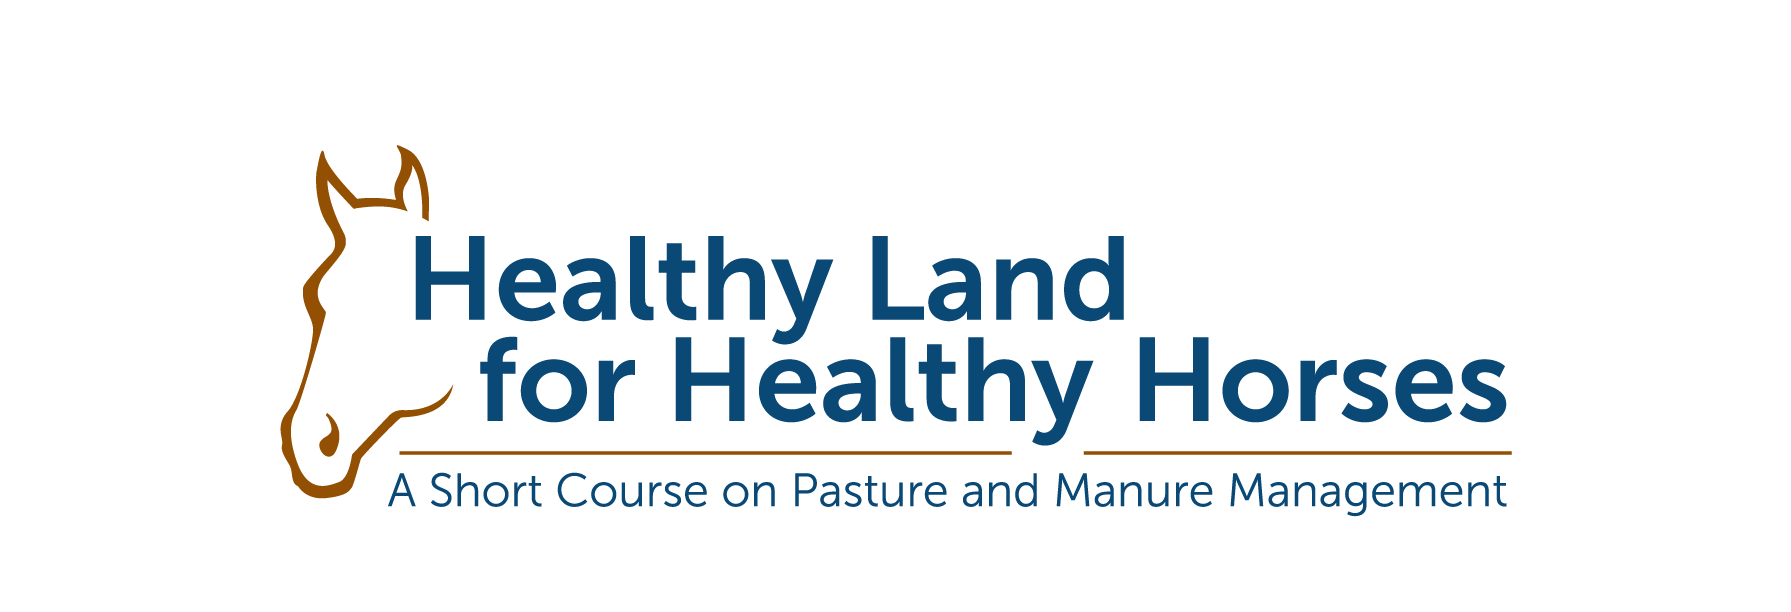 Healthy Lands for Healthy Horses: Short Course